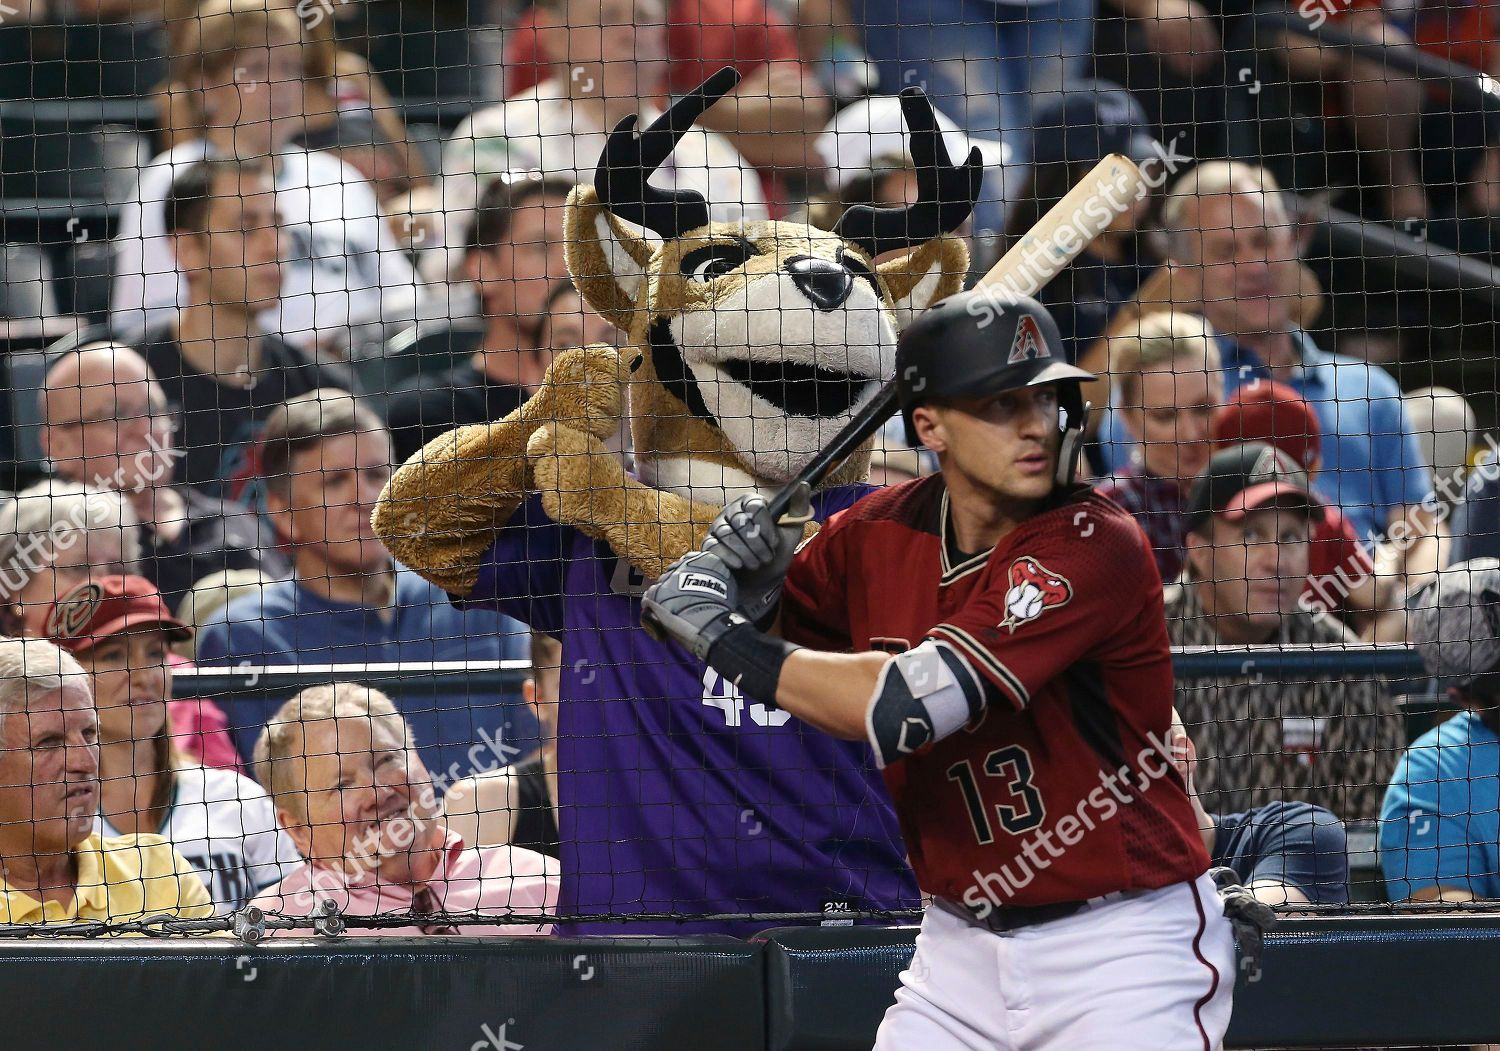 Grand Canyon University Mascot Thunder Mimics Arizona